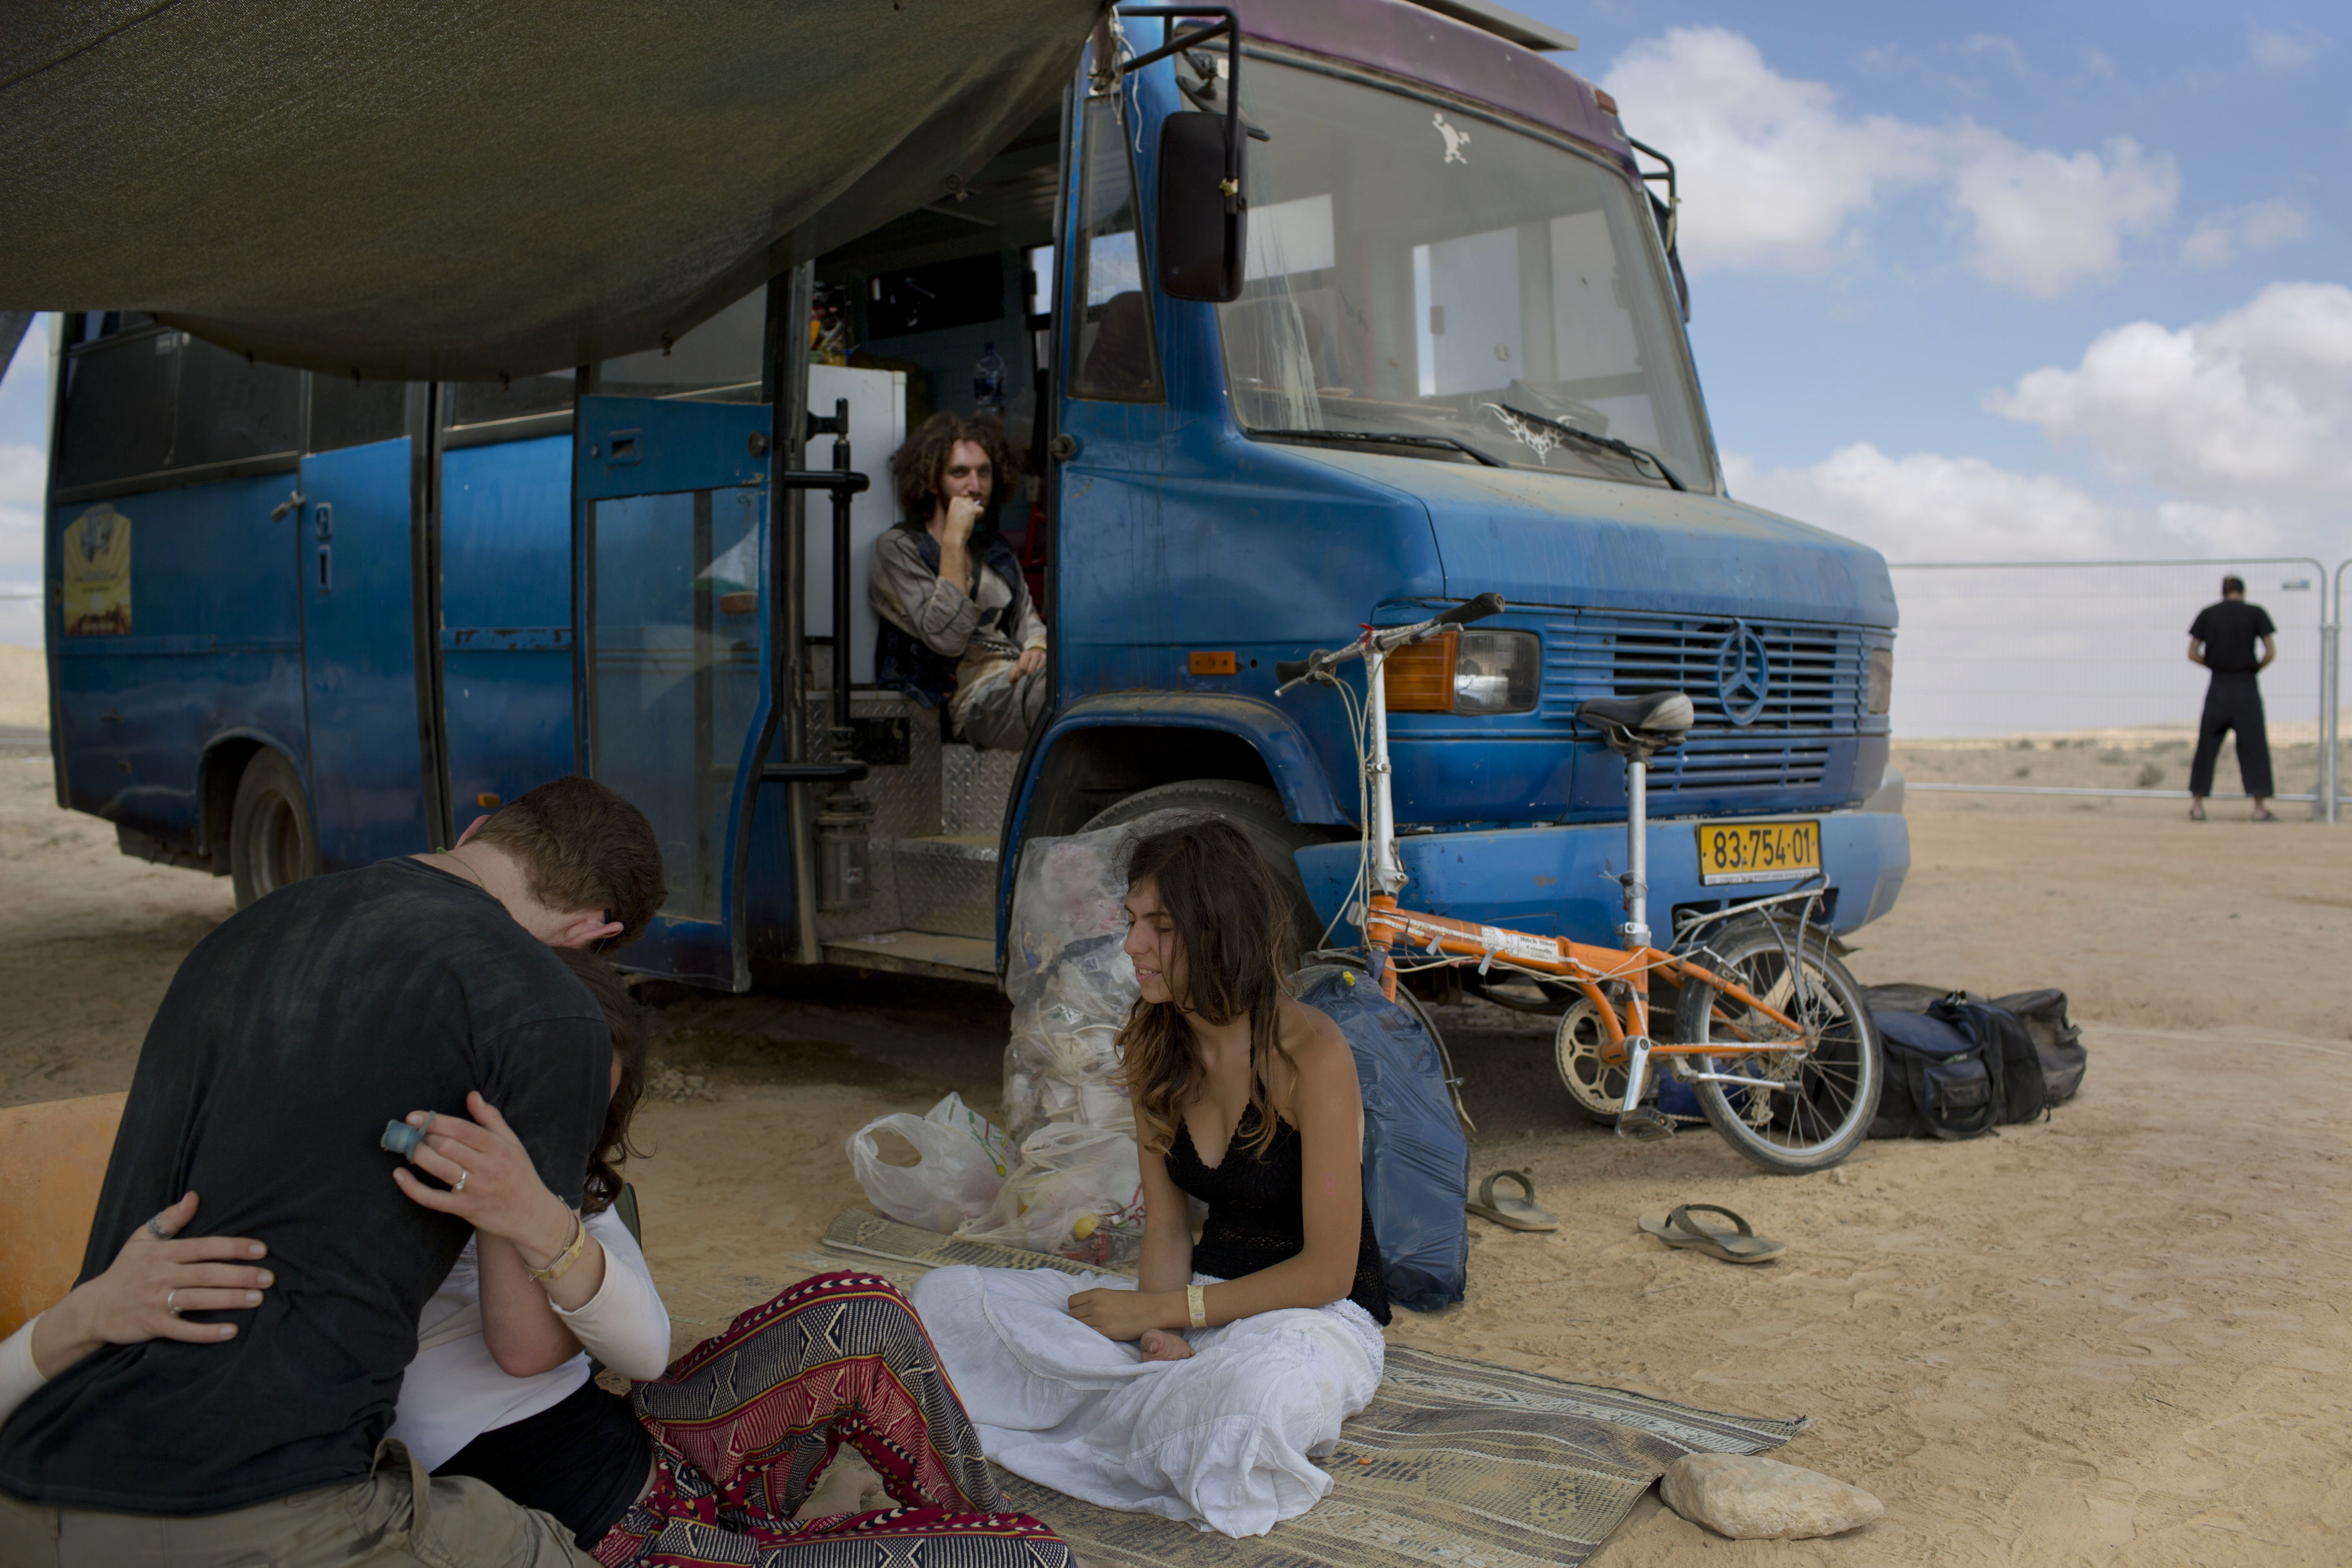 Israelis sits under the shade at Israel''s first Midburn festival in the Negev Desert, Israel on June 7, 2014.